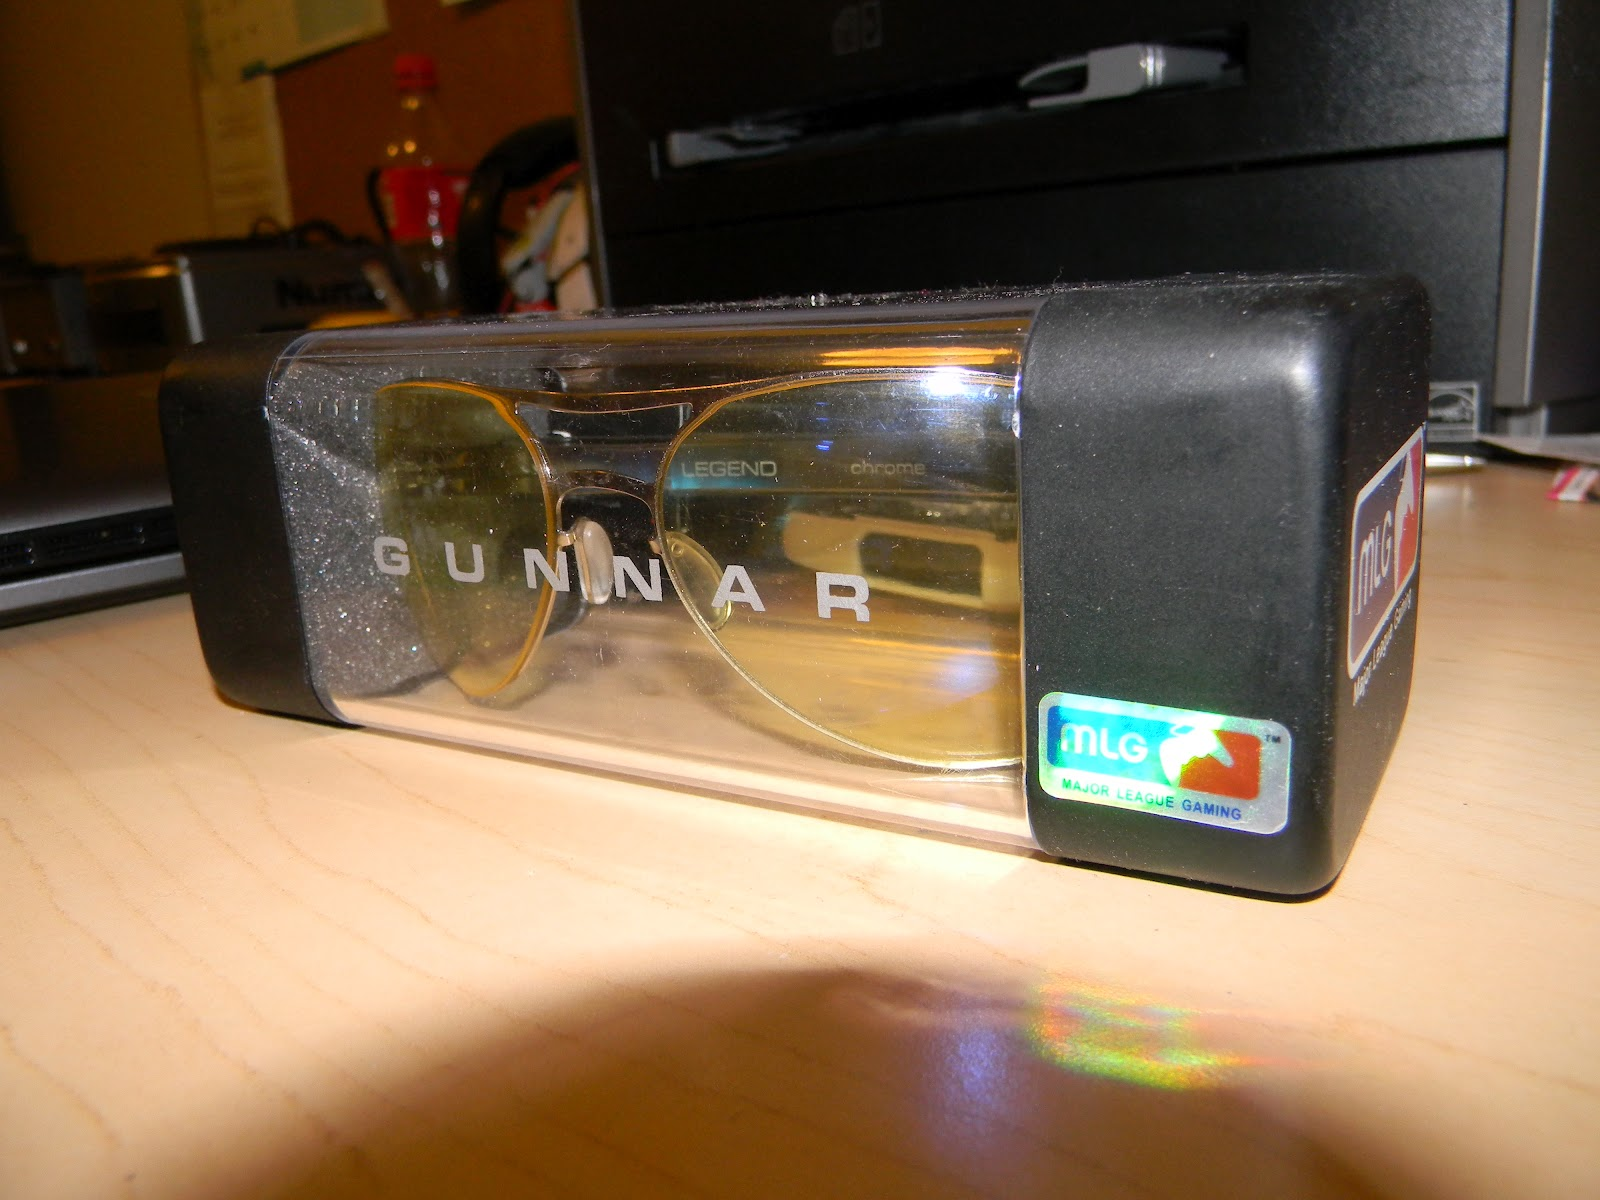 d092fbaca The Gunnar 'Legend' gaming glasses is MLG certified, so you know its ready  for some hardcore gaming.